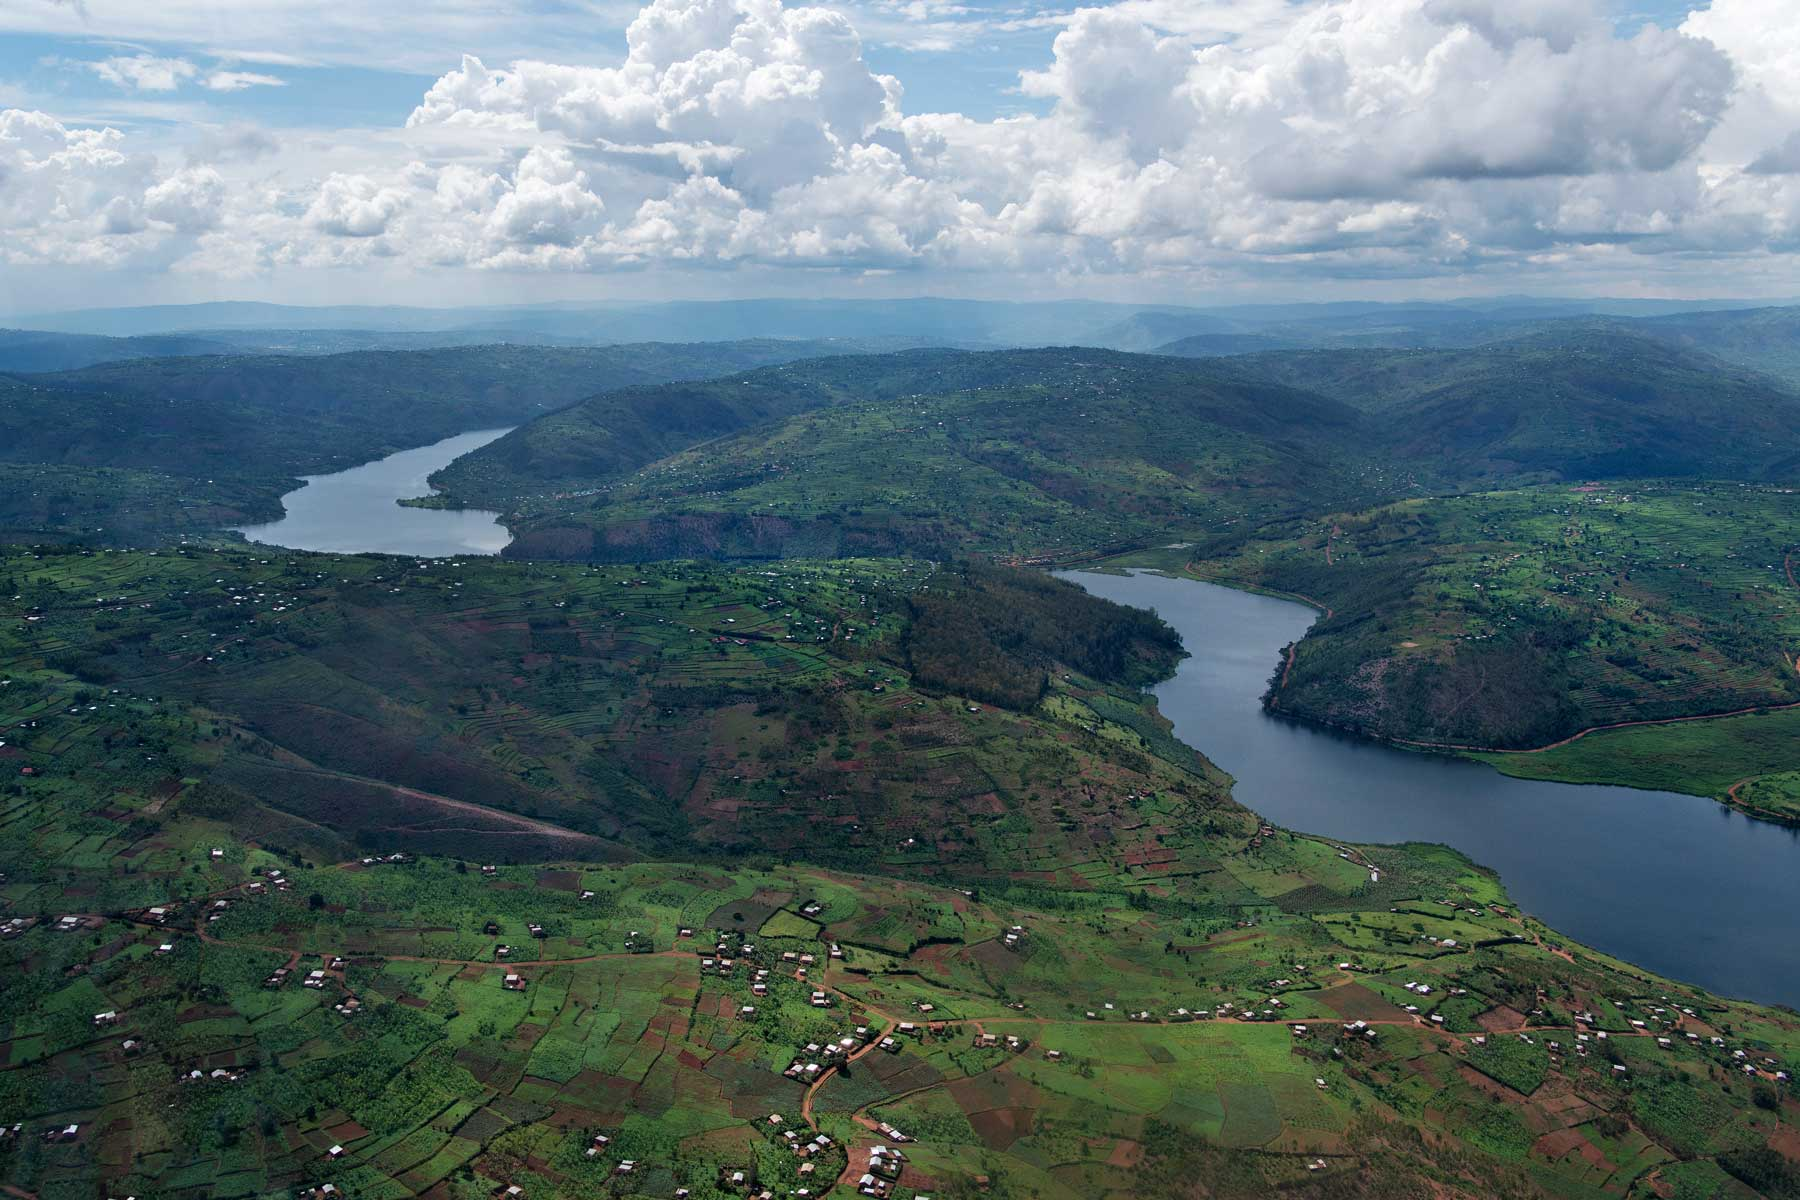 Aerial view of Lake Muhazi in Rwanda